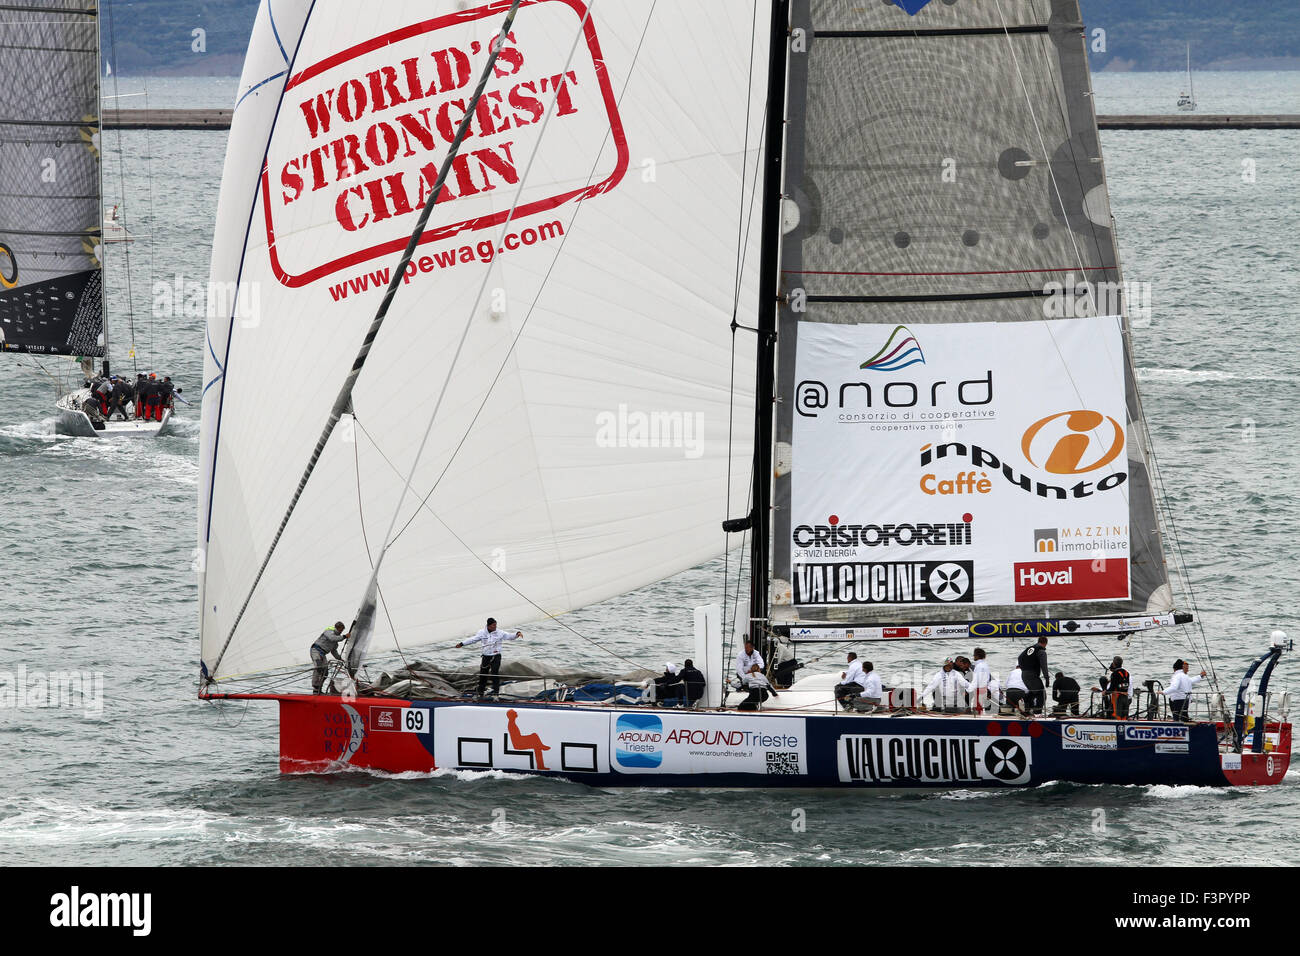 Trieste, Italy. 11th Oct, 2015. Boat sail Tempus Fugit by Marco Furlan during the 47th Barcolana regatta in Trieste's - Stock Image